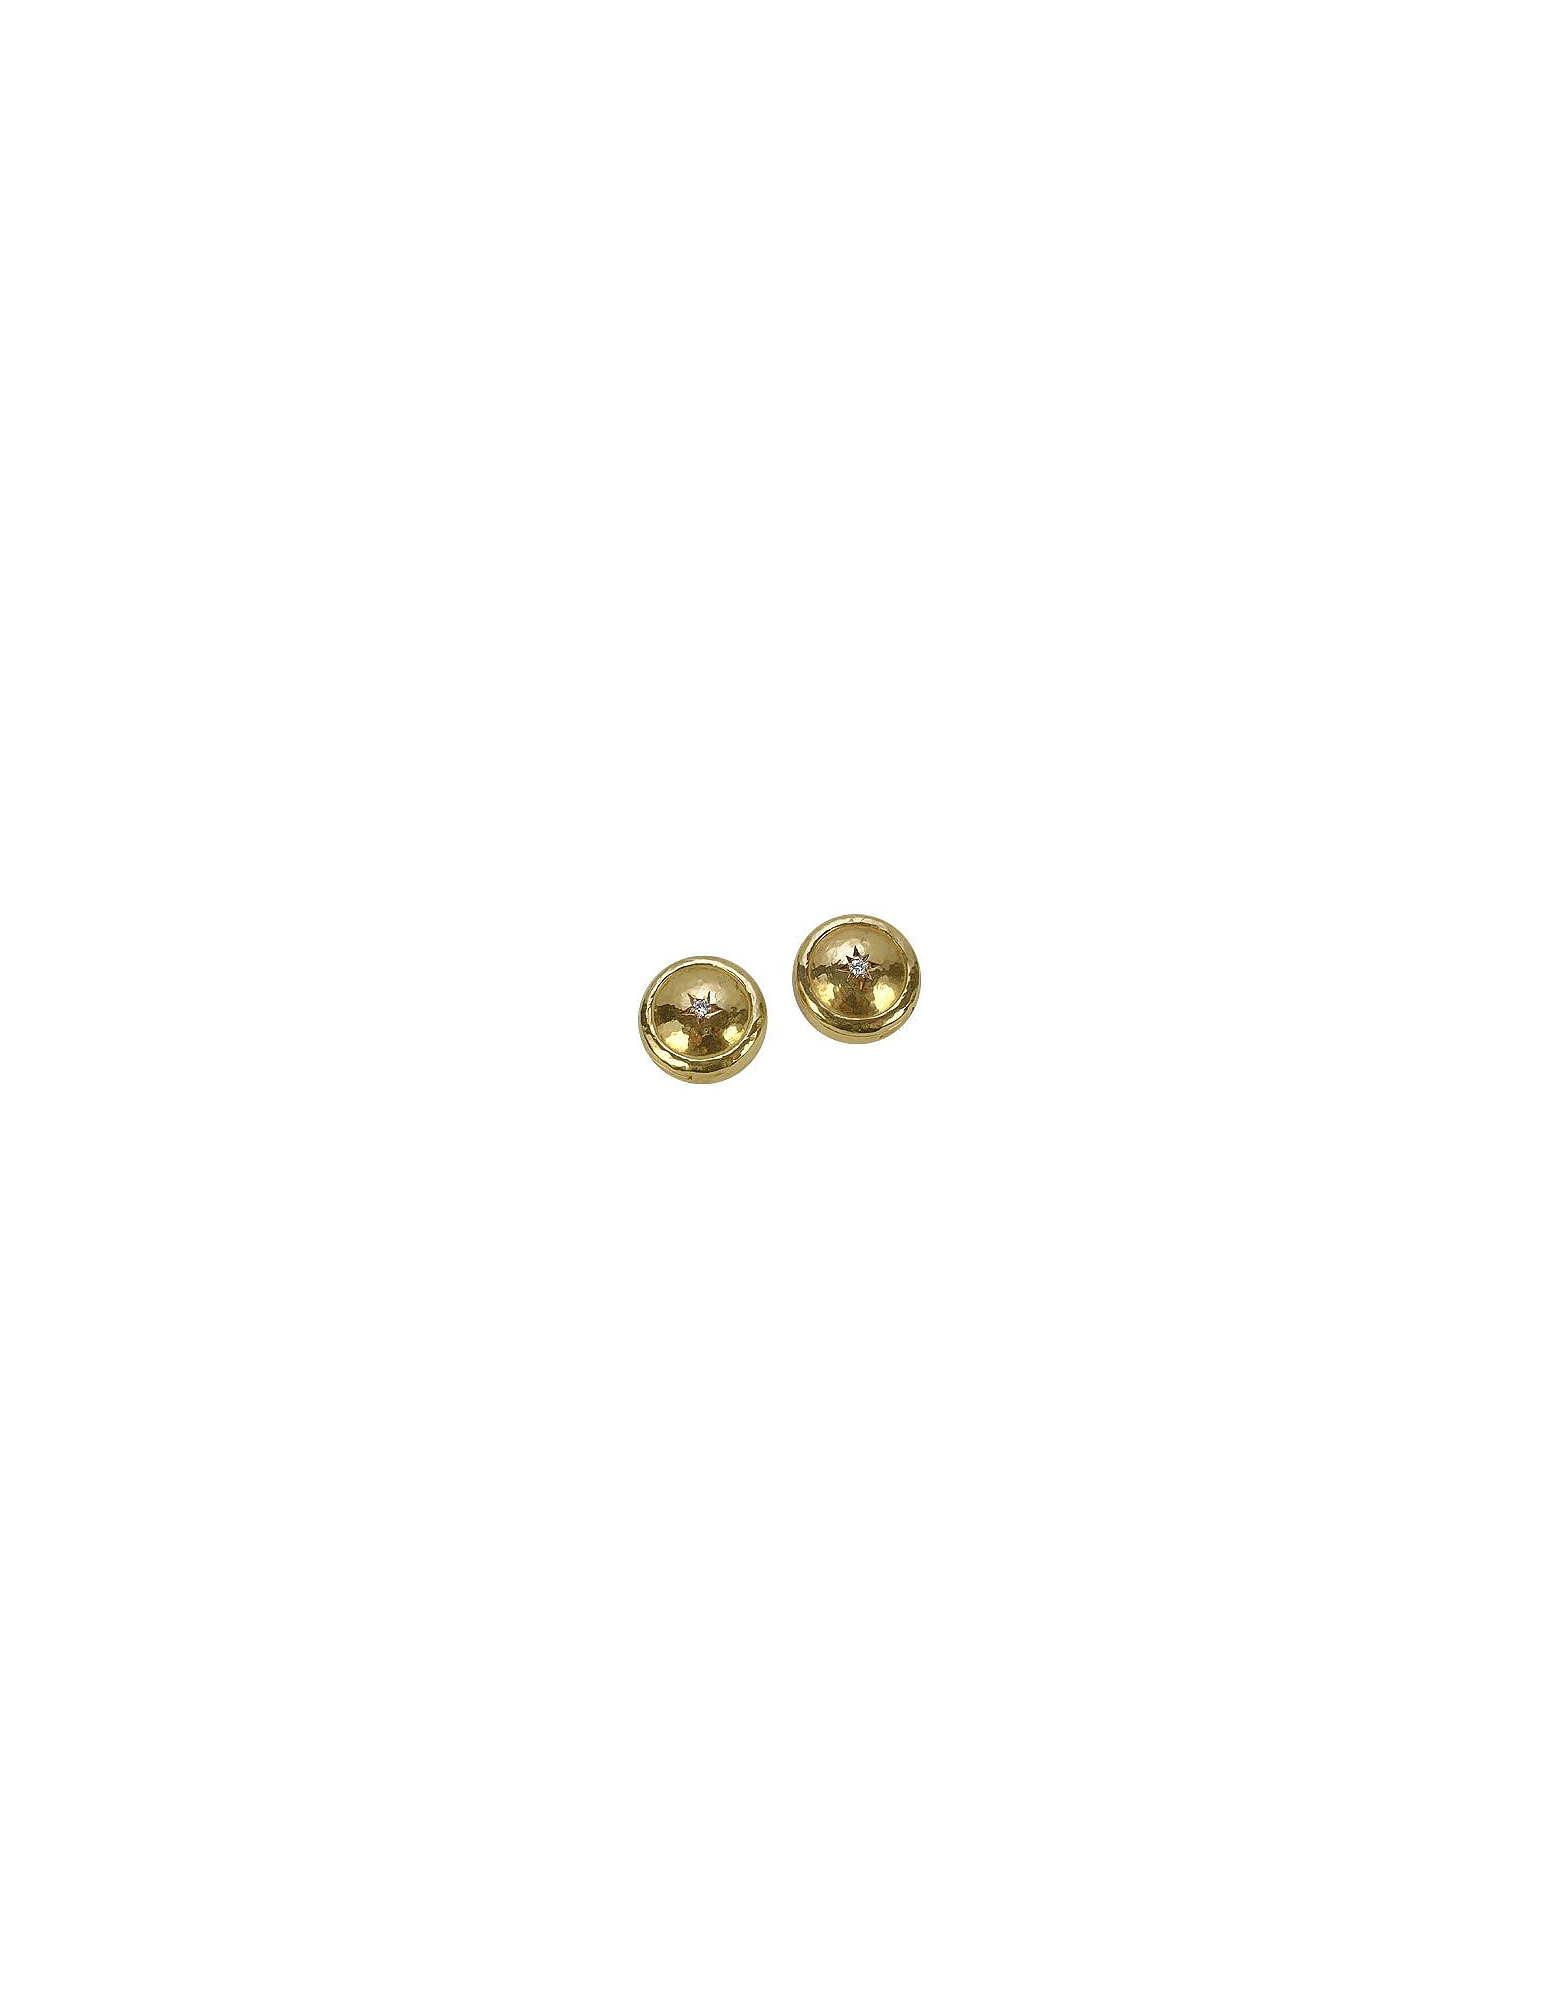 Torrini Button Covers, 18K Gold and Diamond Star Button Covers